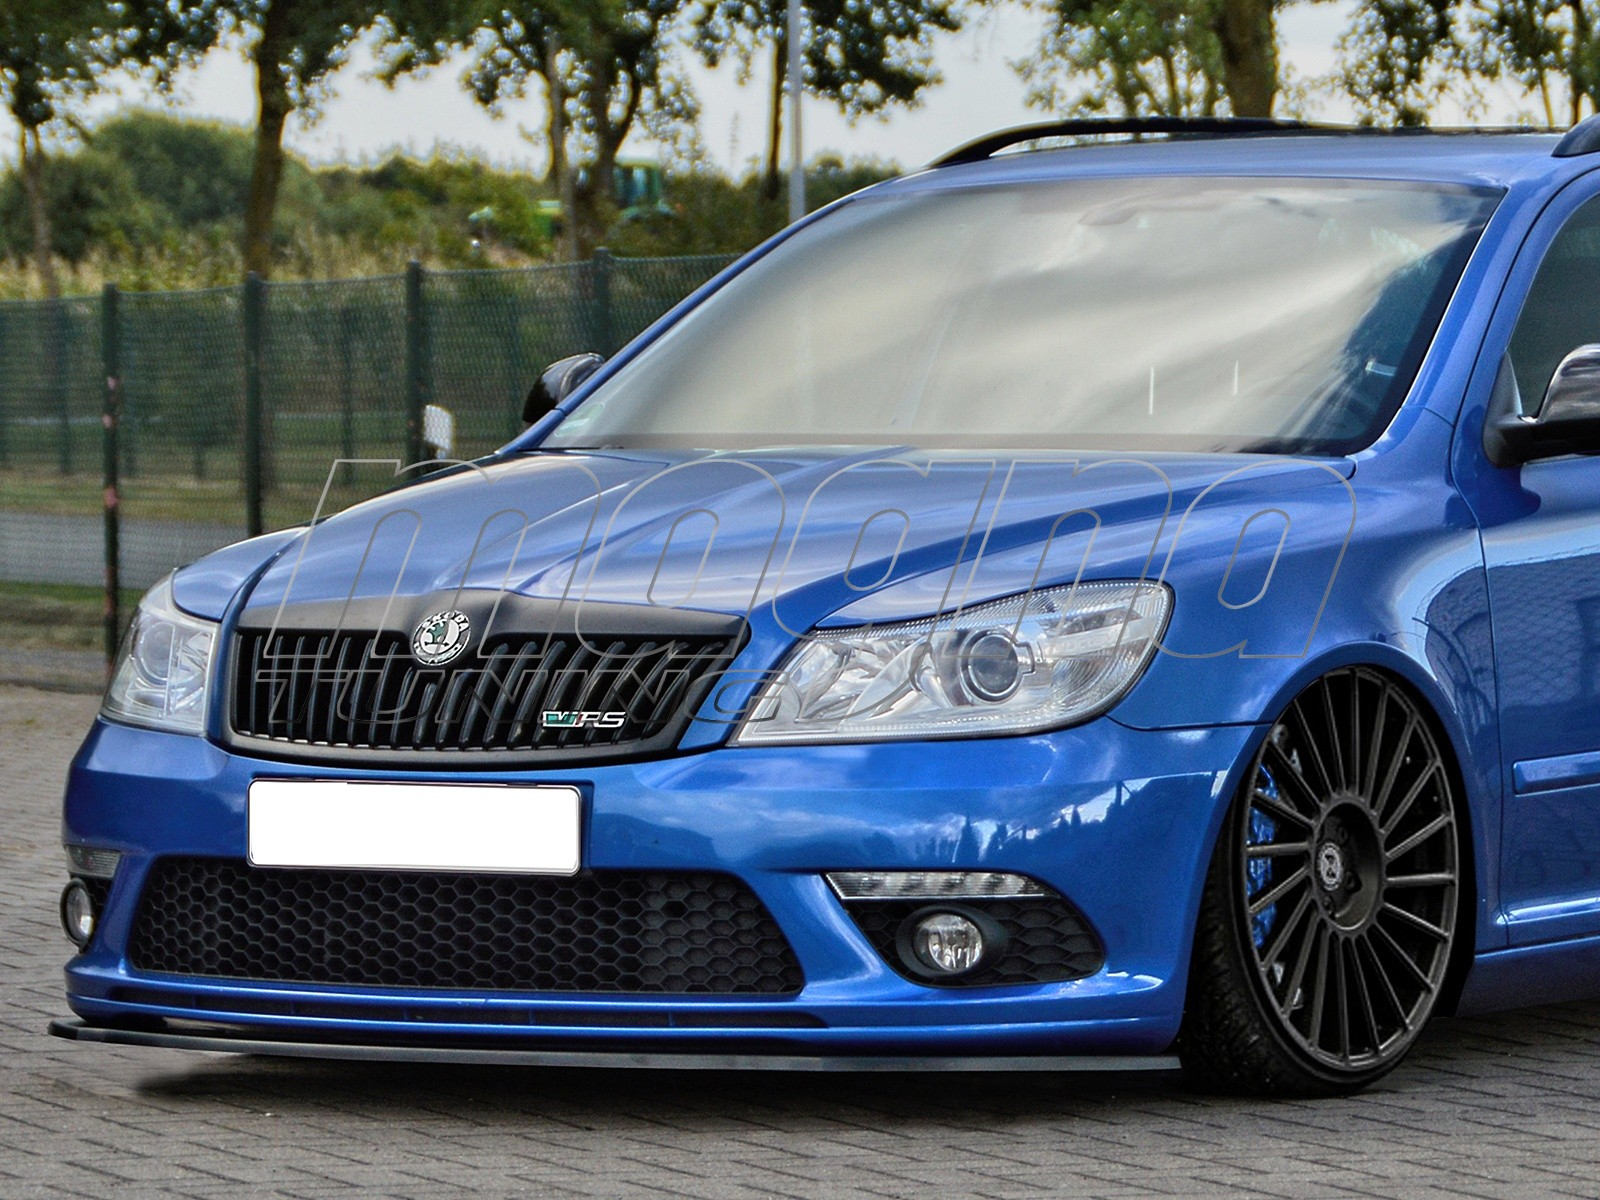 skoda octavia mk2 1z rs facelift invido front bumper extension. Black Bedroom Furniture Sets. Home Design Ideas